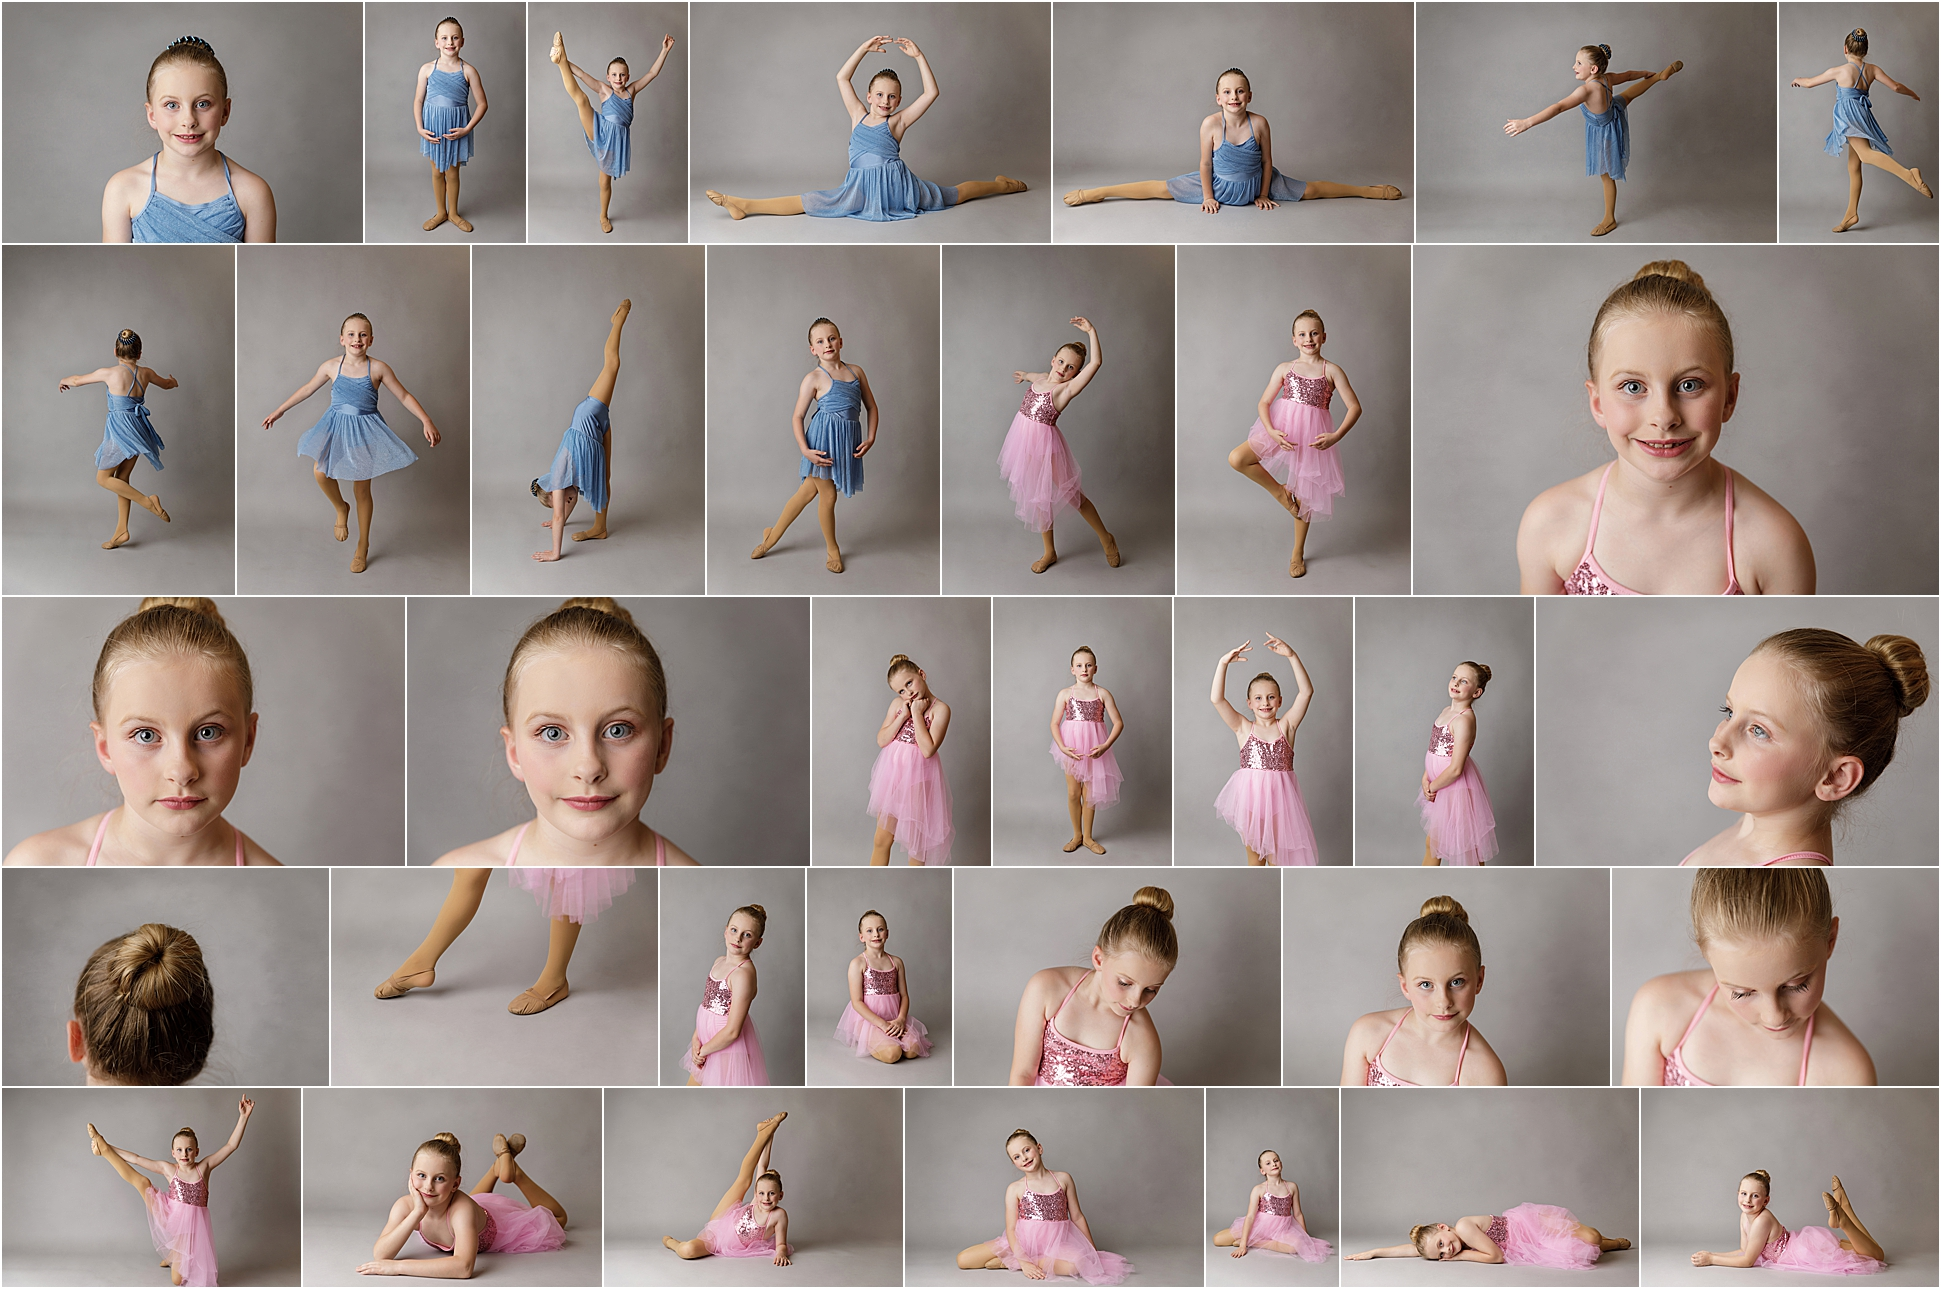 Washington School of Dance Pictures